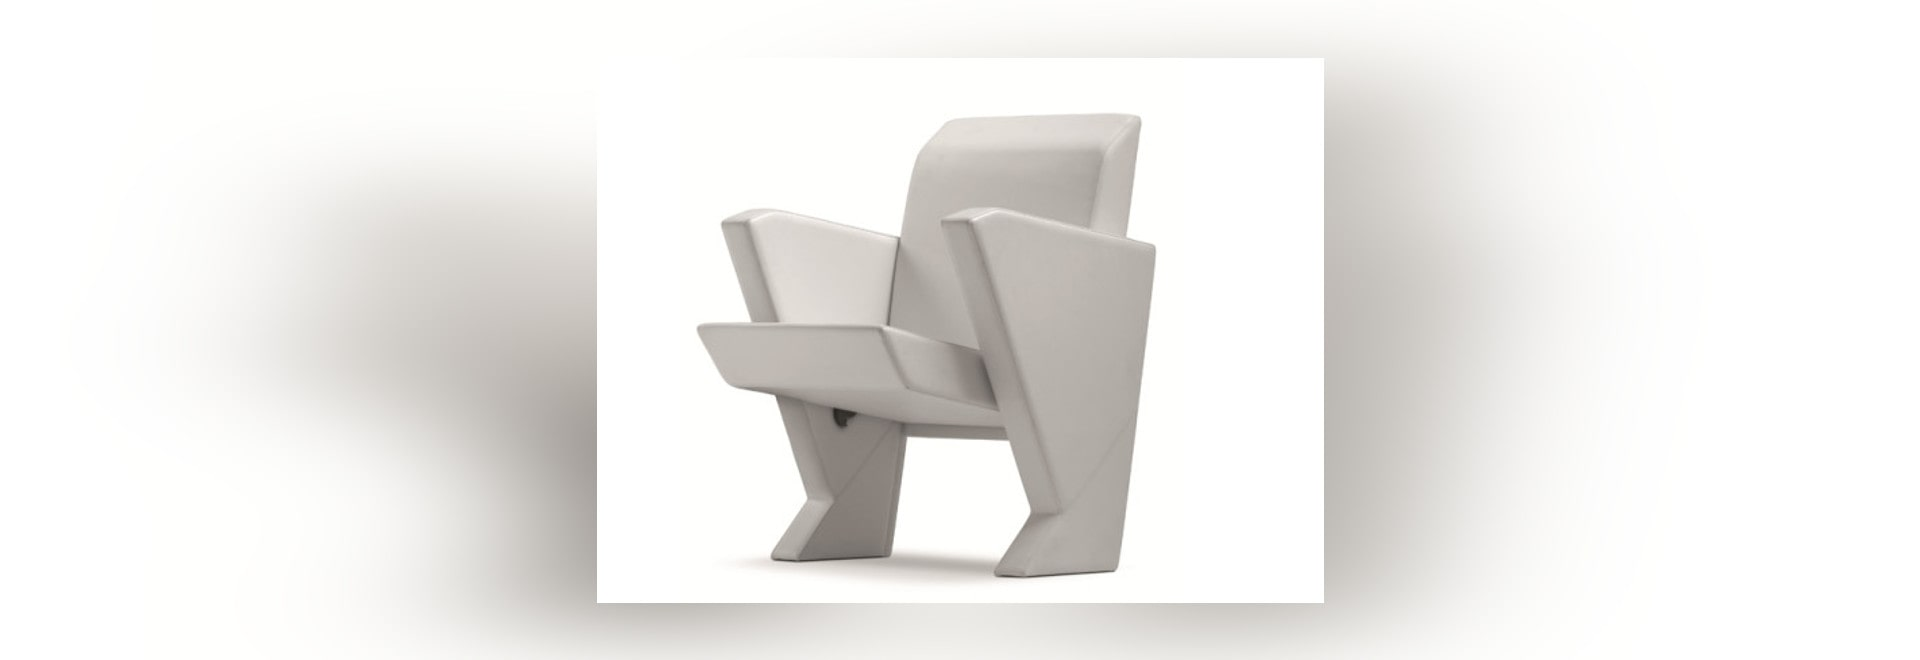 Luxurious chairs designed by Daniel Libeskind star in his new MICX